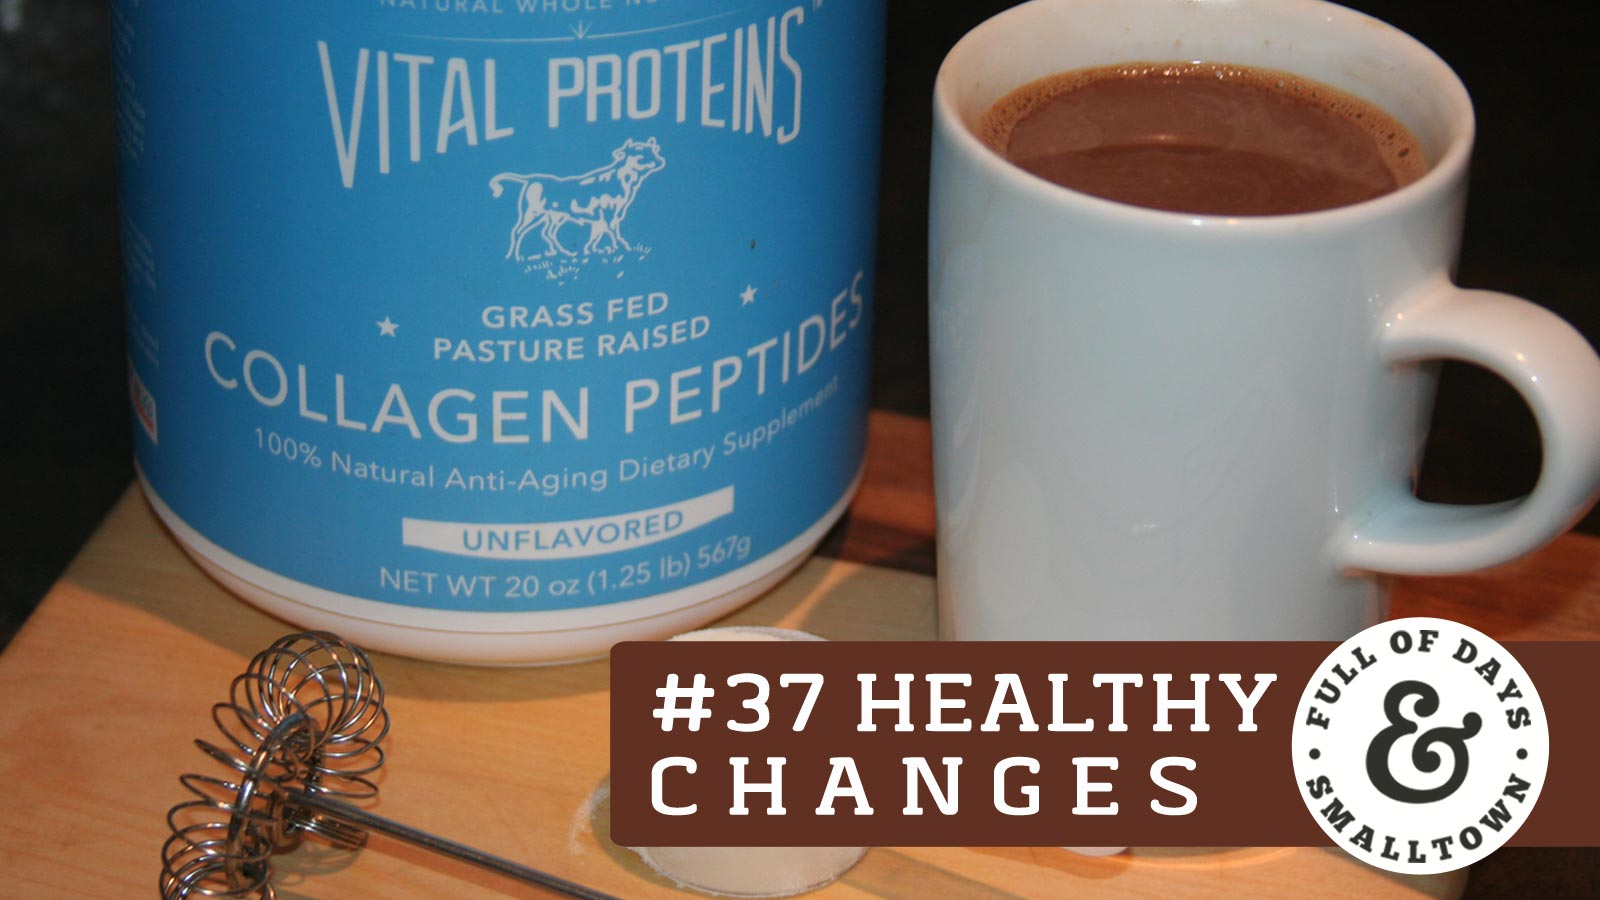 healthy-changes_full-of-days_37_1600-x-900